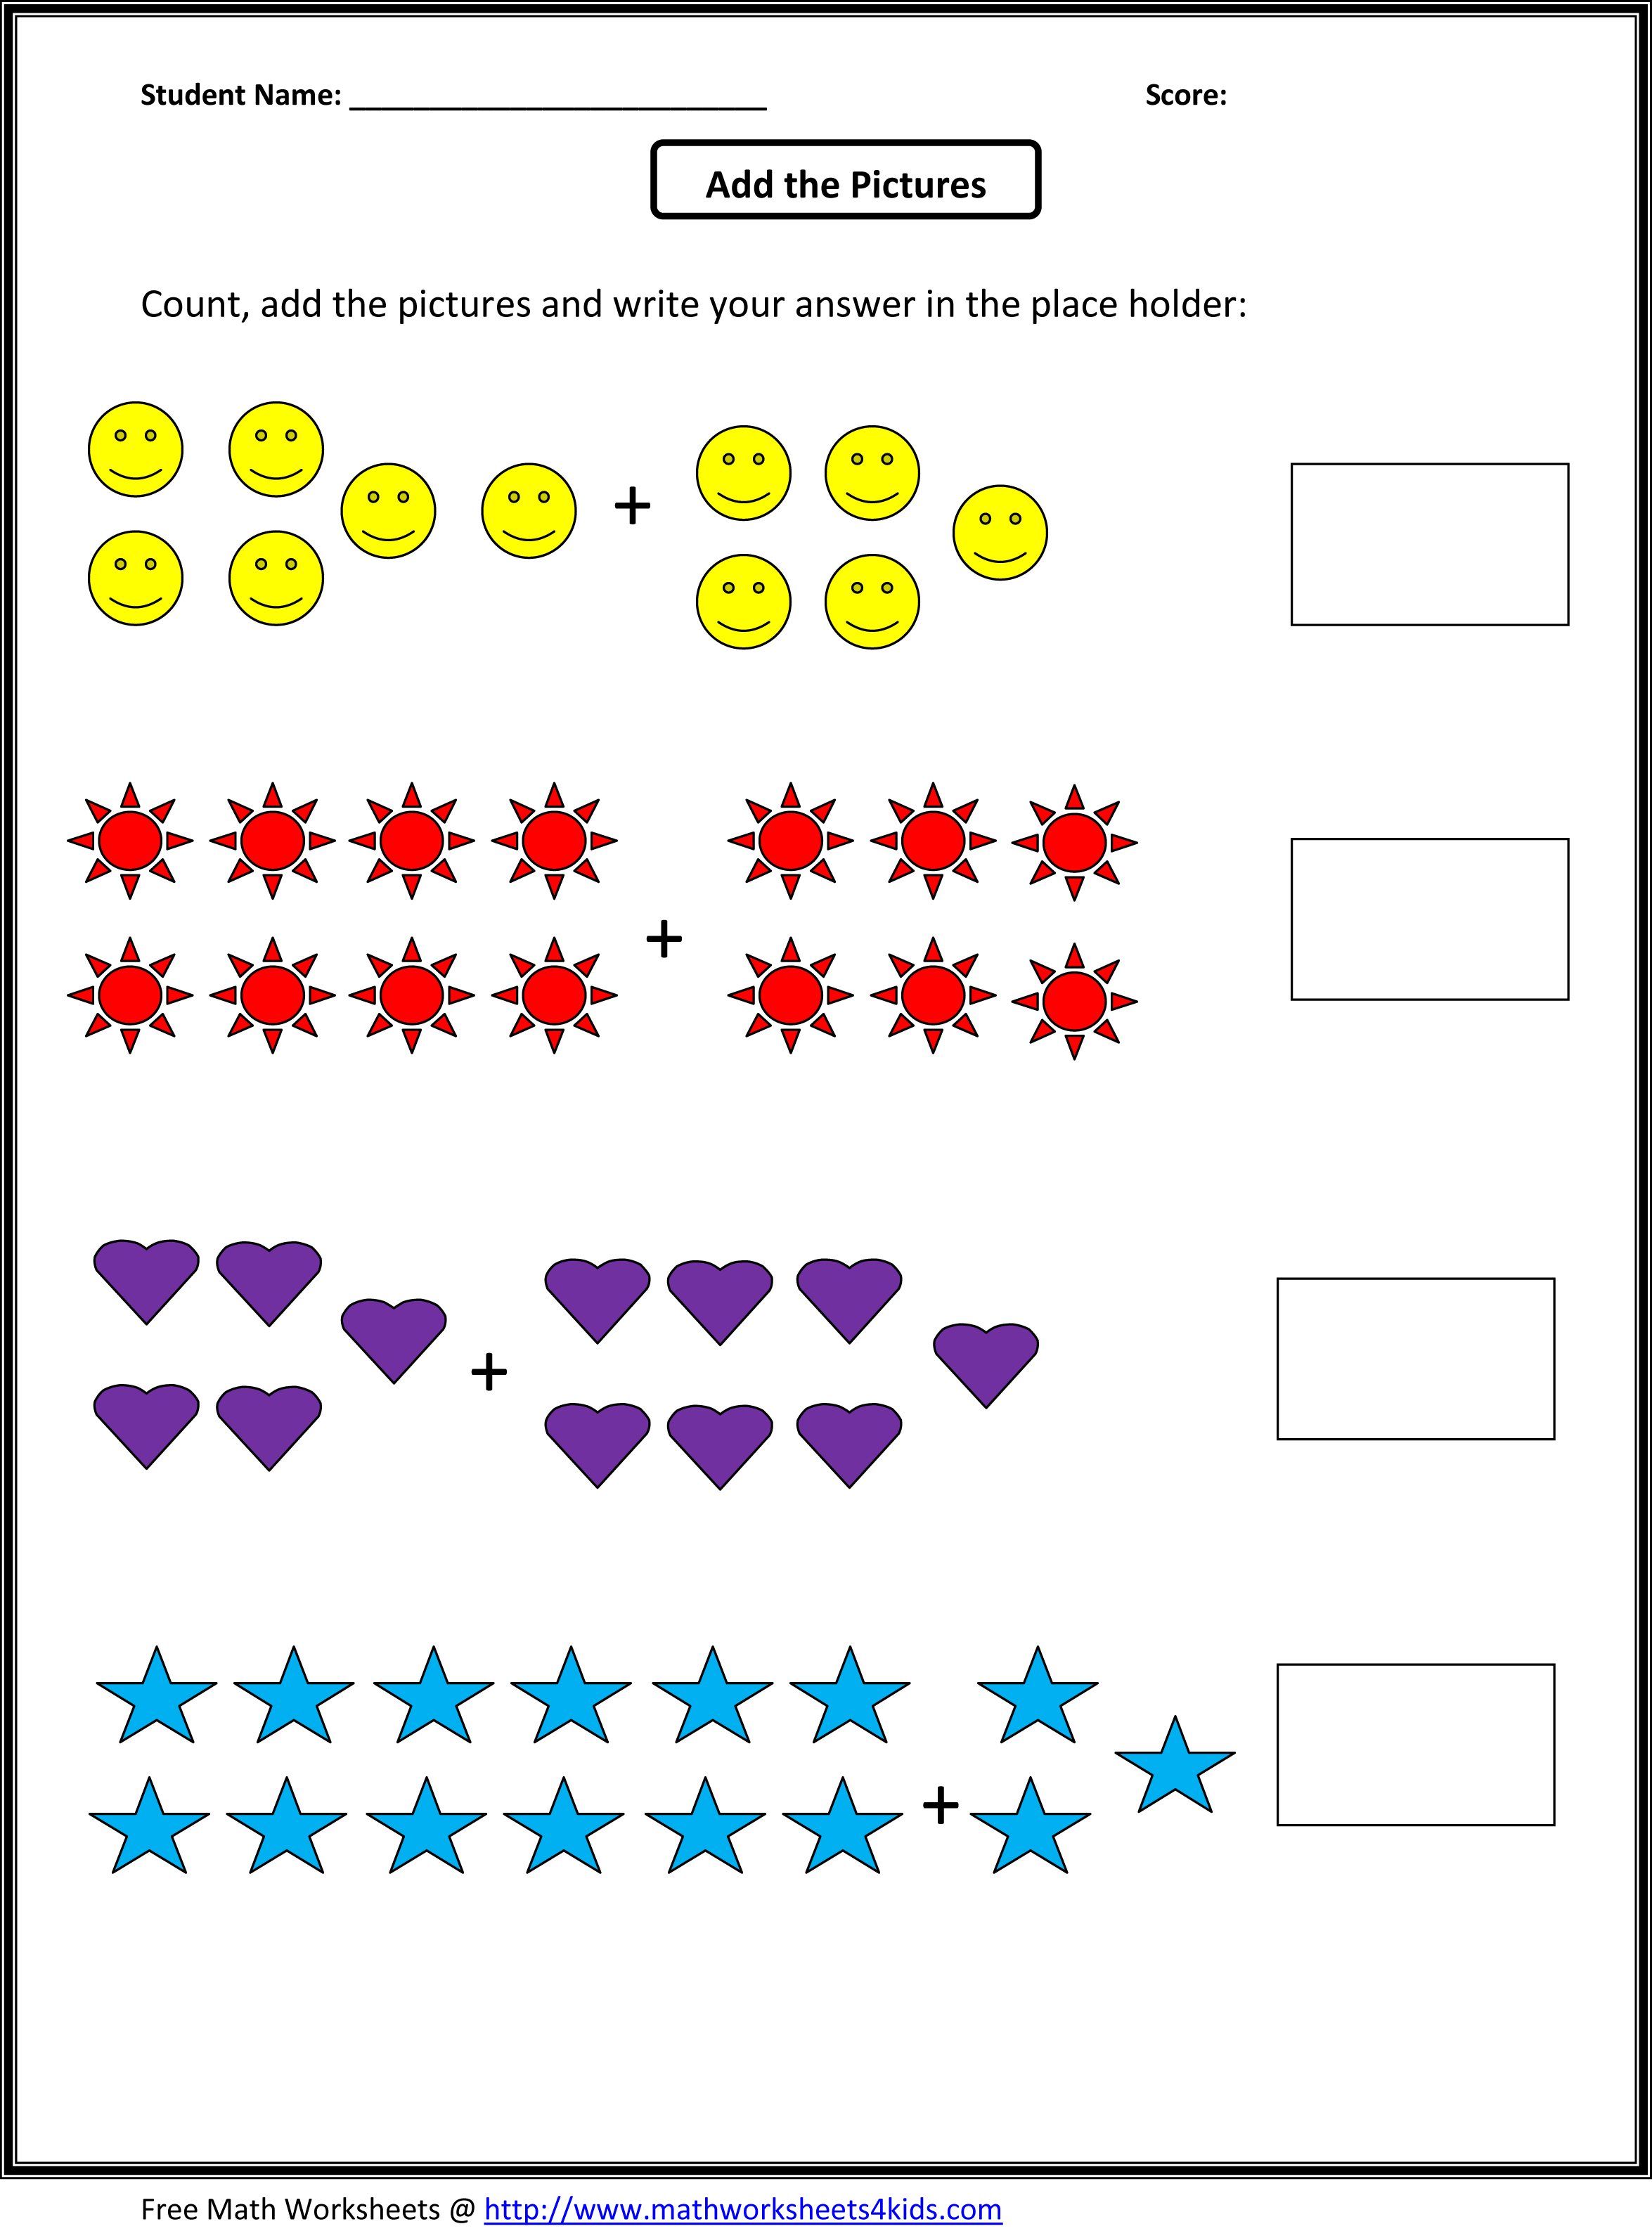 Weirdmailus  Unusual Grade  Maths Worksheet  Reocurent With Interesting Math Worksheets For St Grade Free  Reocurent With Beautiful Poetry Reading Comprehension Worksheets Also Printable Maths Worksheets Year  In Addition English Comprehension Worksheets For Grade  And Solving Equations With One Variable Worksheets As Well As Maths Decimals Worksheets Additionally Probability Worksheets For Rd Grade From Reocurentcom With Weirdmailus  Interesting Grade  Maths Worksheet  Reocurent With Beautiful Math Worksheets For St Grade Free  Reocurent And Unusual Poetry Reading Comprehension Worksheets Also Printable Maths Worksheets Year  In Addition English Comprehension Worksheets For Grade  From Reocurentcom